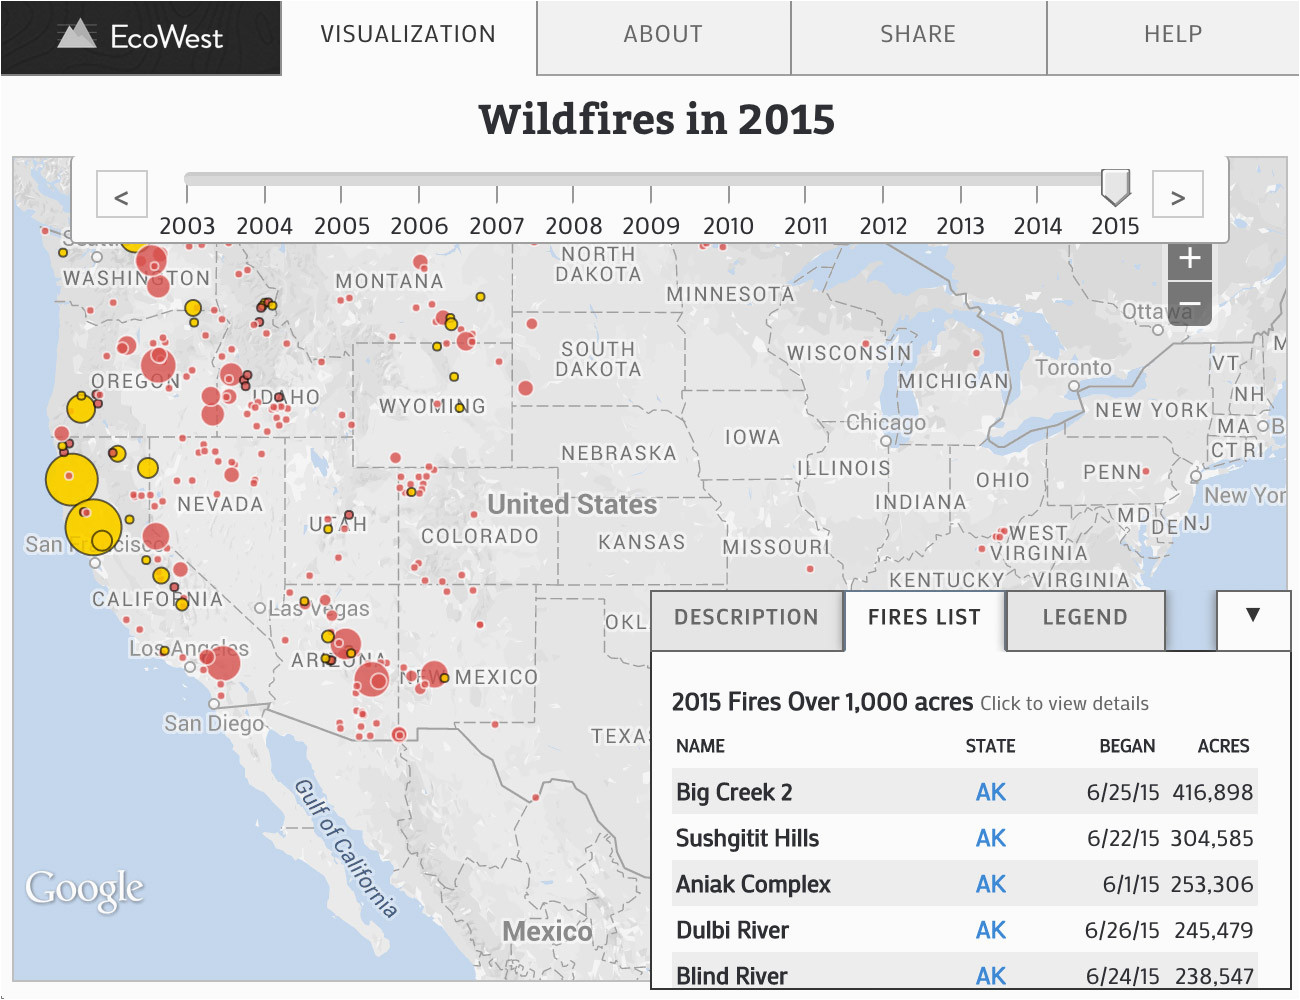 wildfires in the united states data visualization by ecowest org